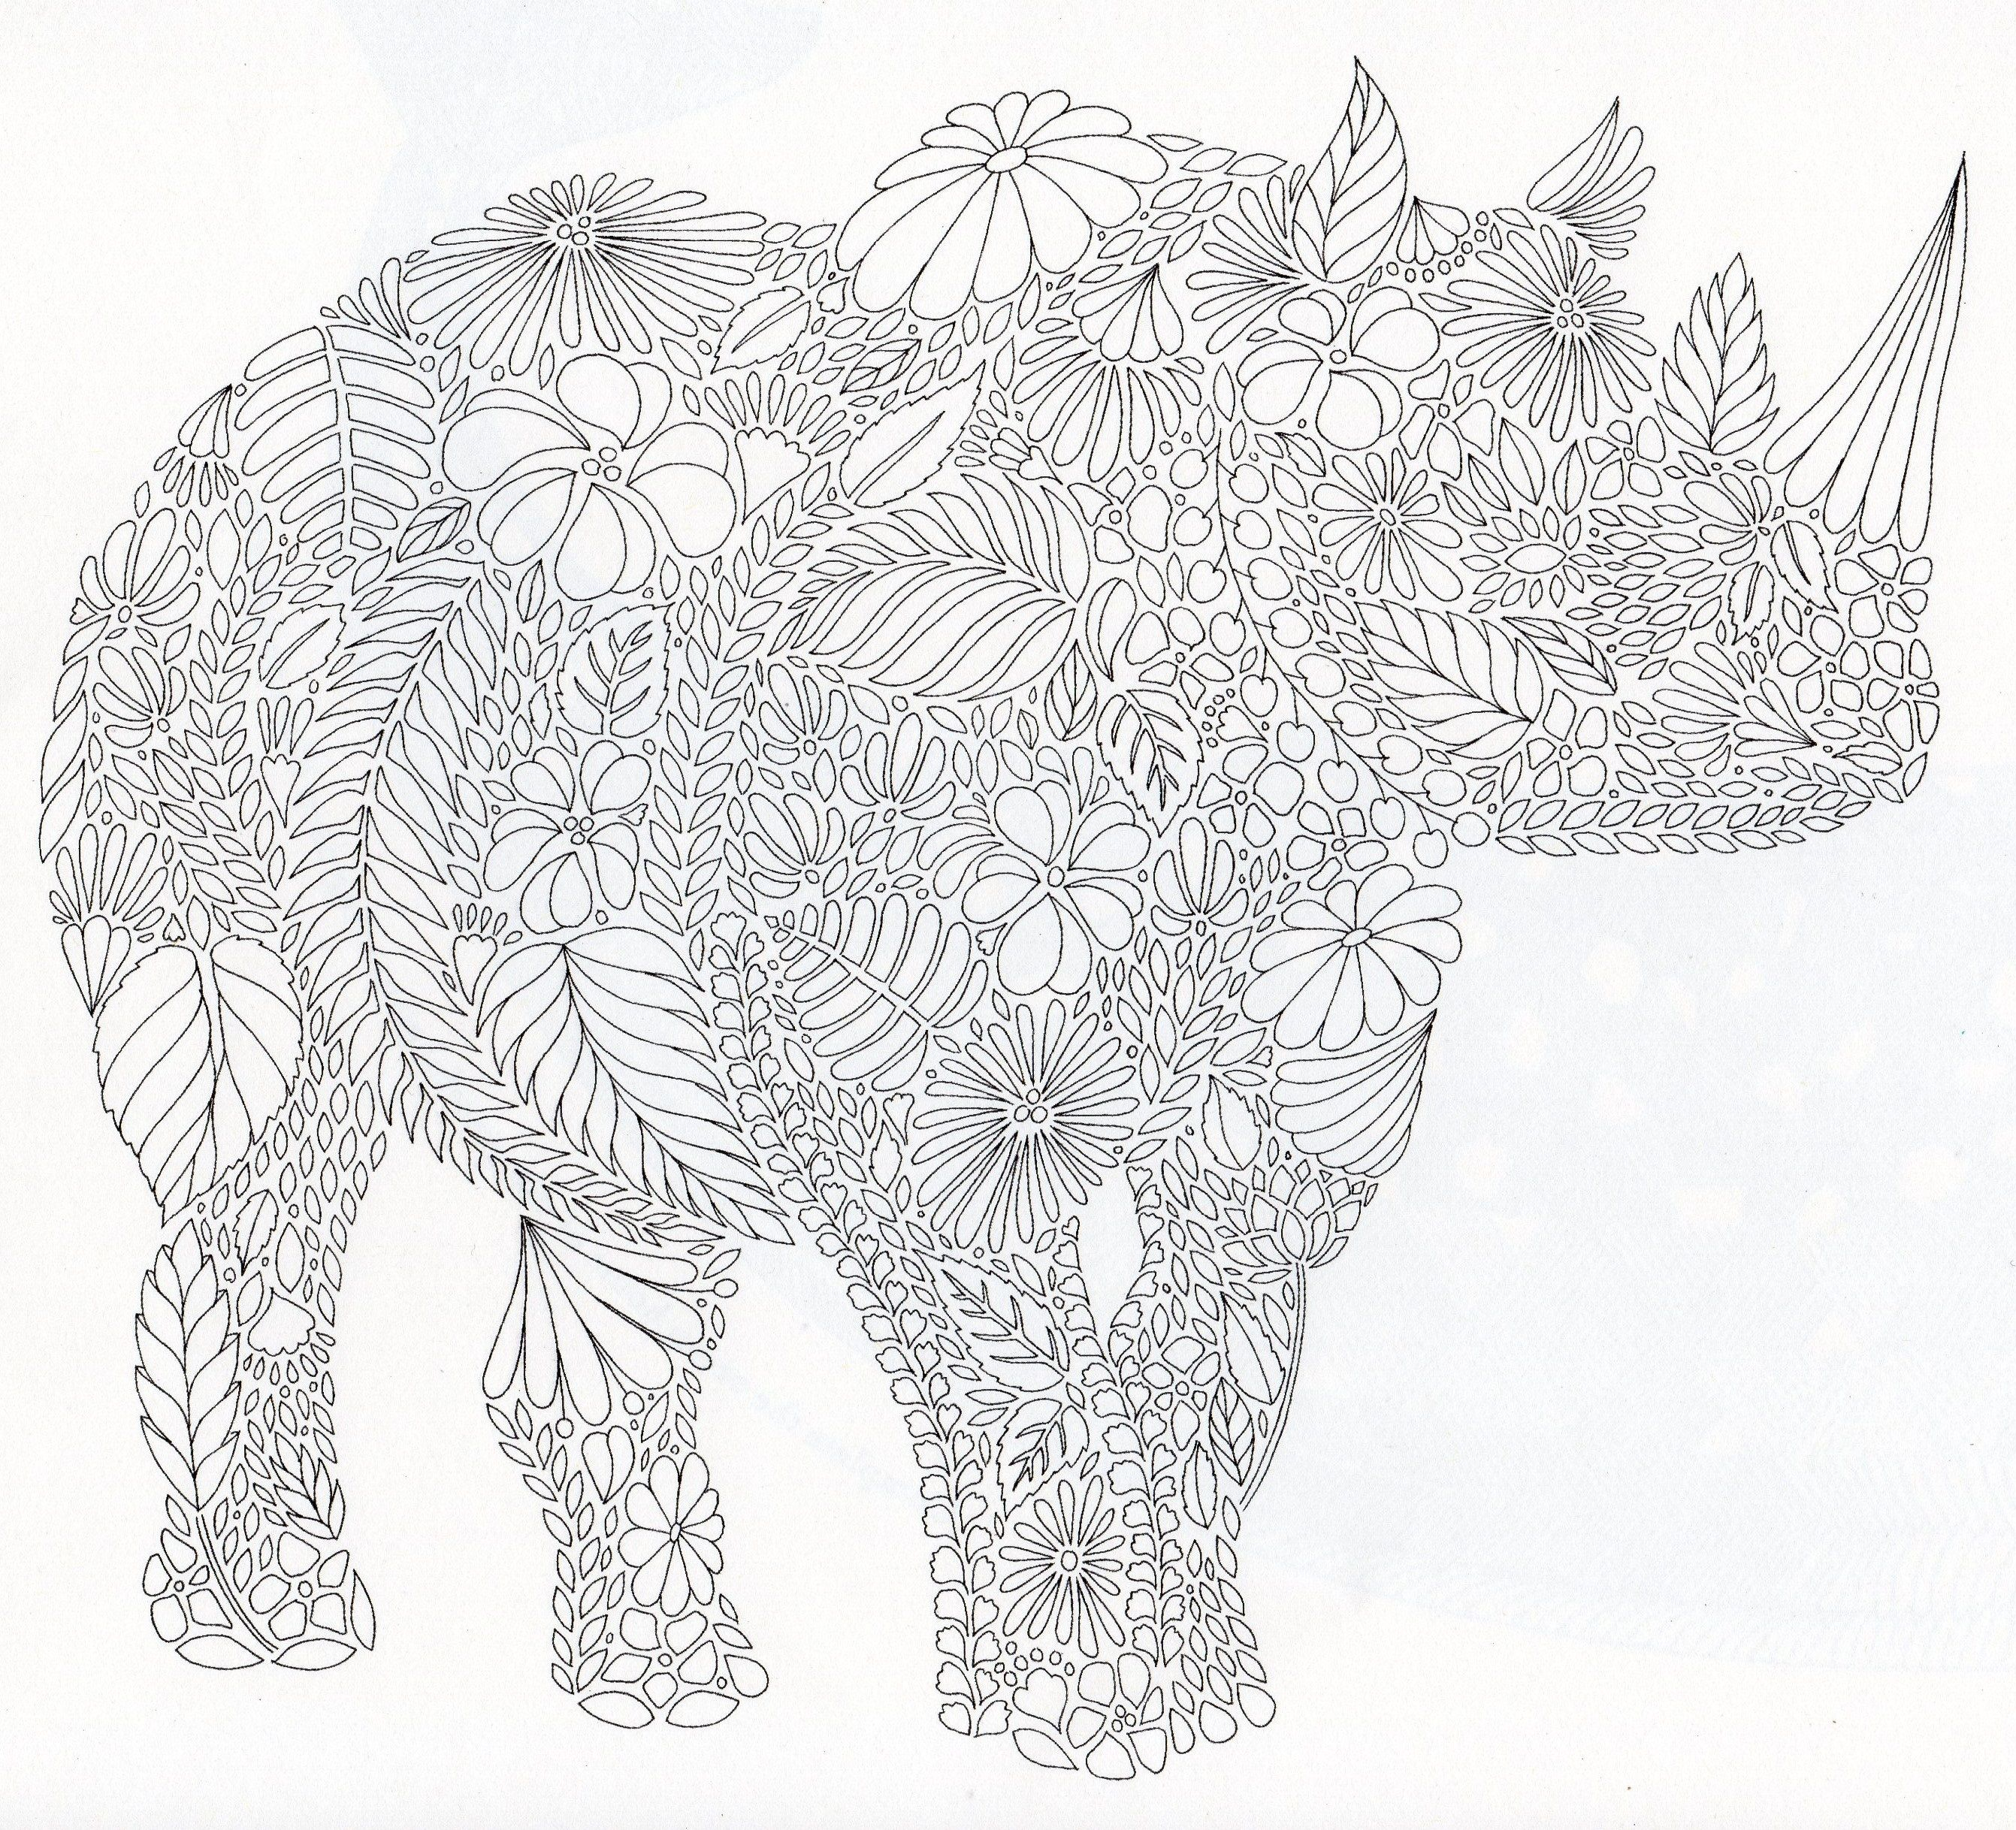 Millie Marotta's Animal Kingdom Rhinoceroses